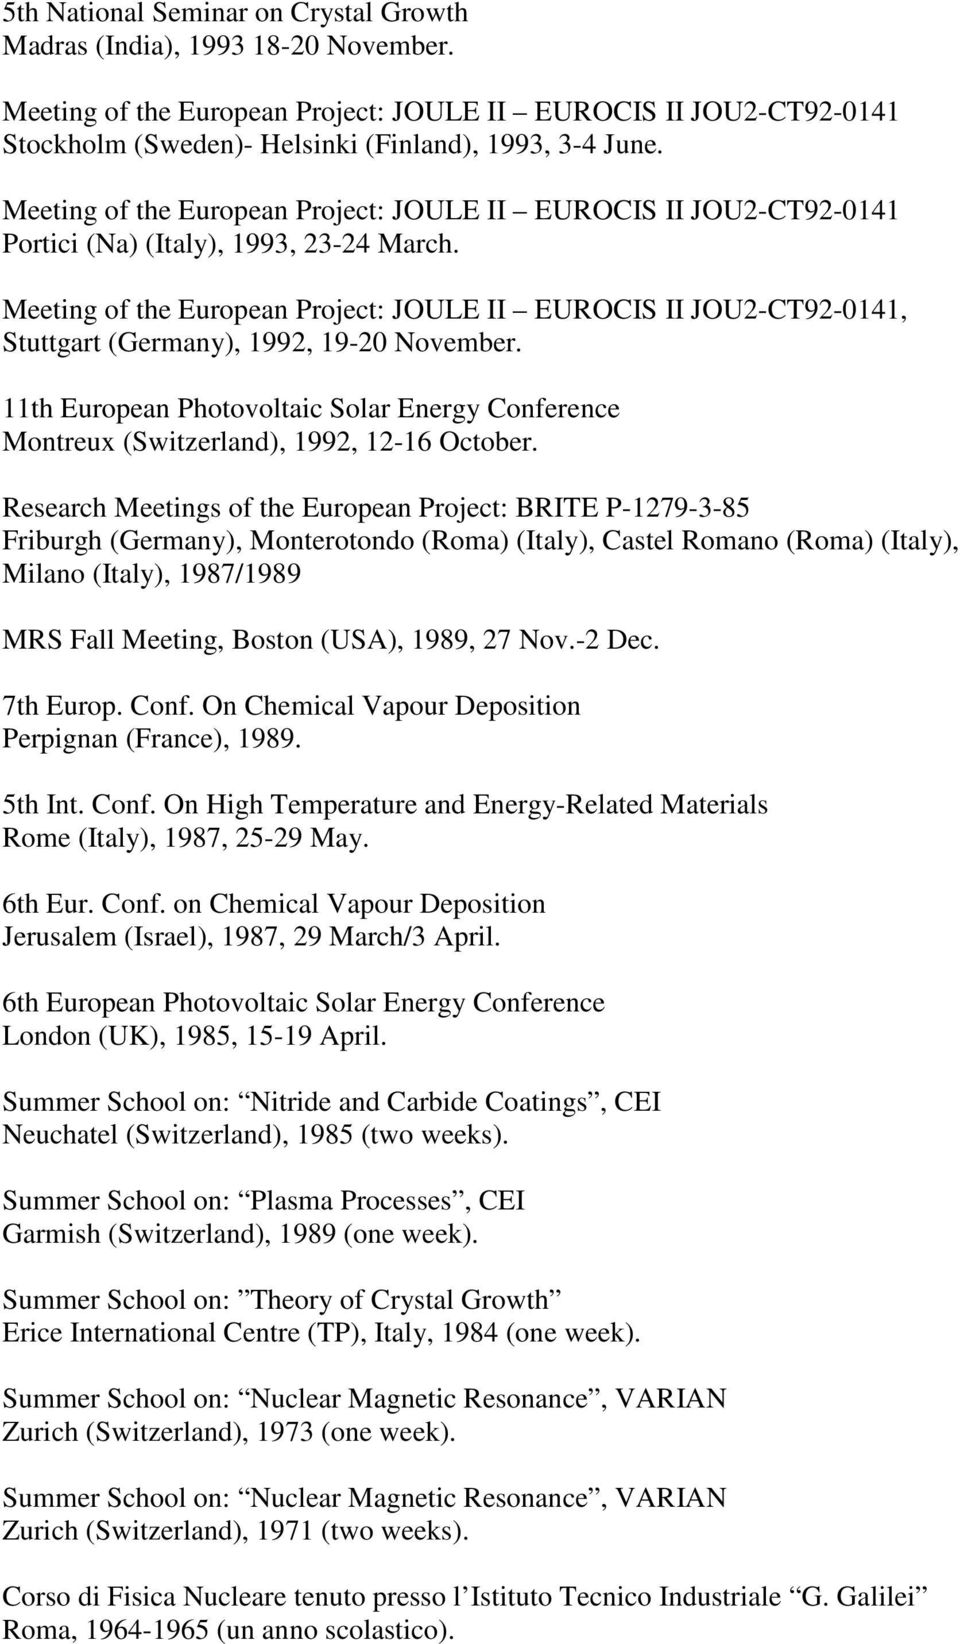 Meeting of the European Project: JOULE II EUROCIS II JOU2-CT92-0141, Stuttgart (Germany), 1992, 19-20 November.